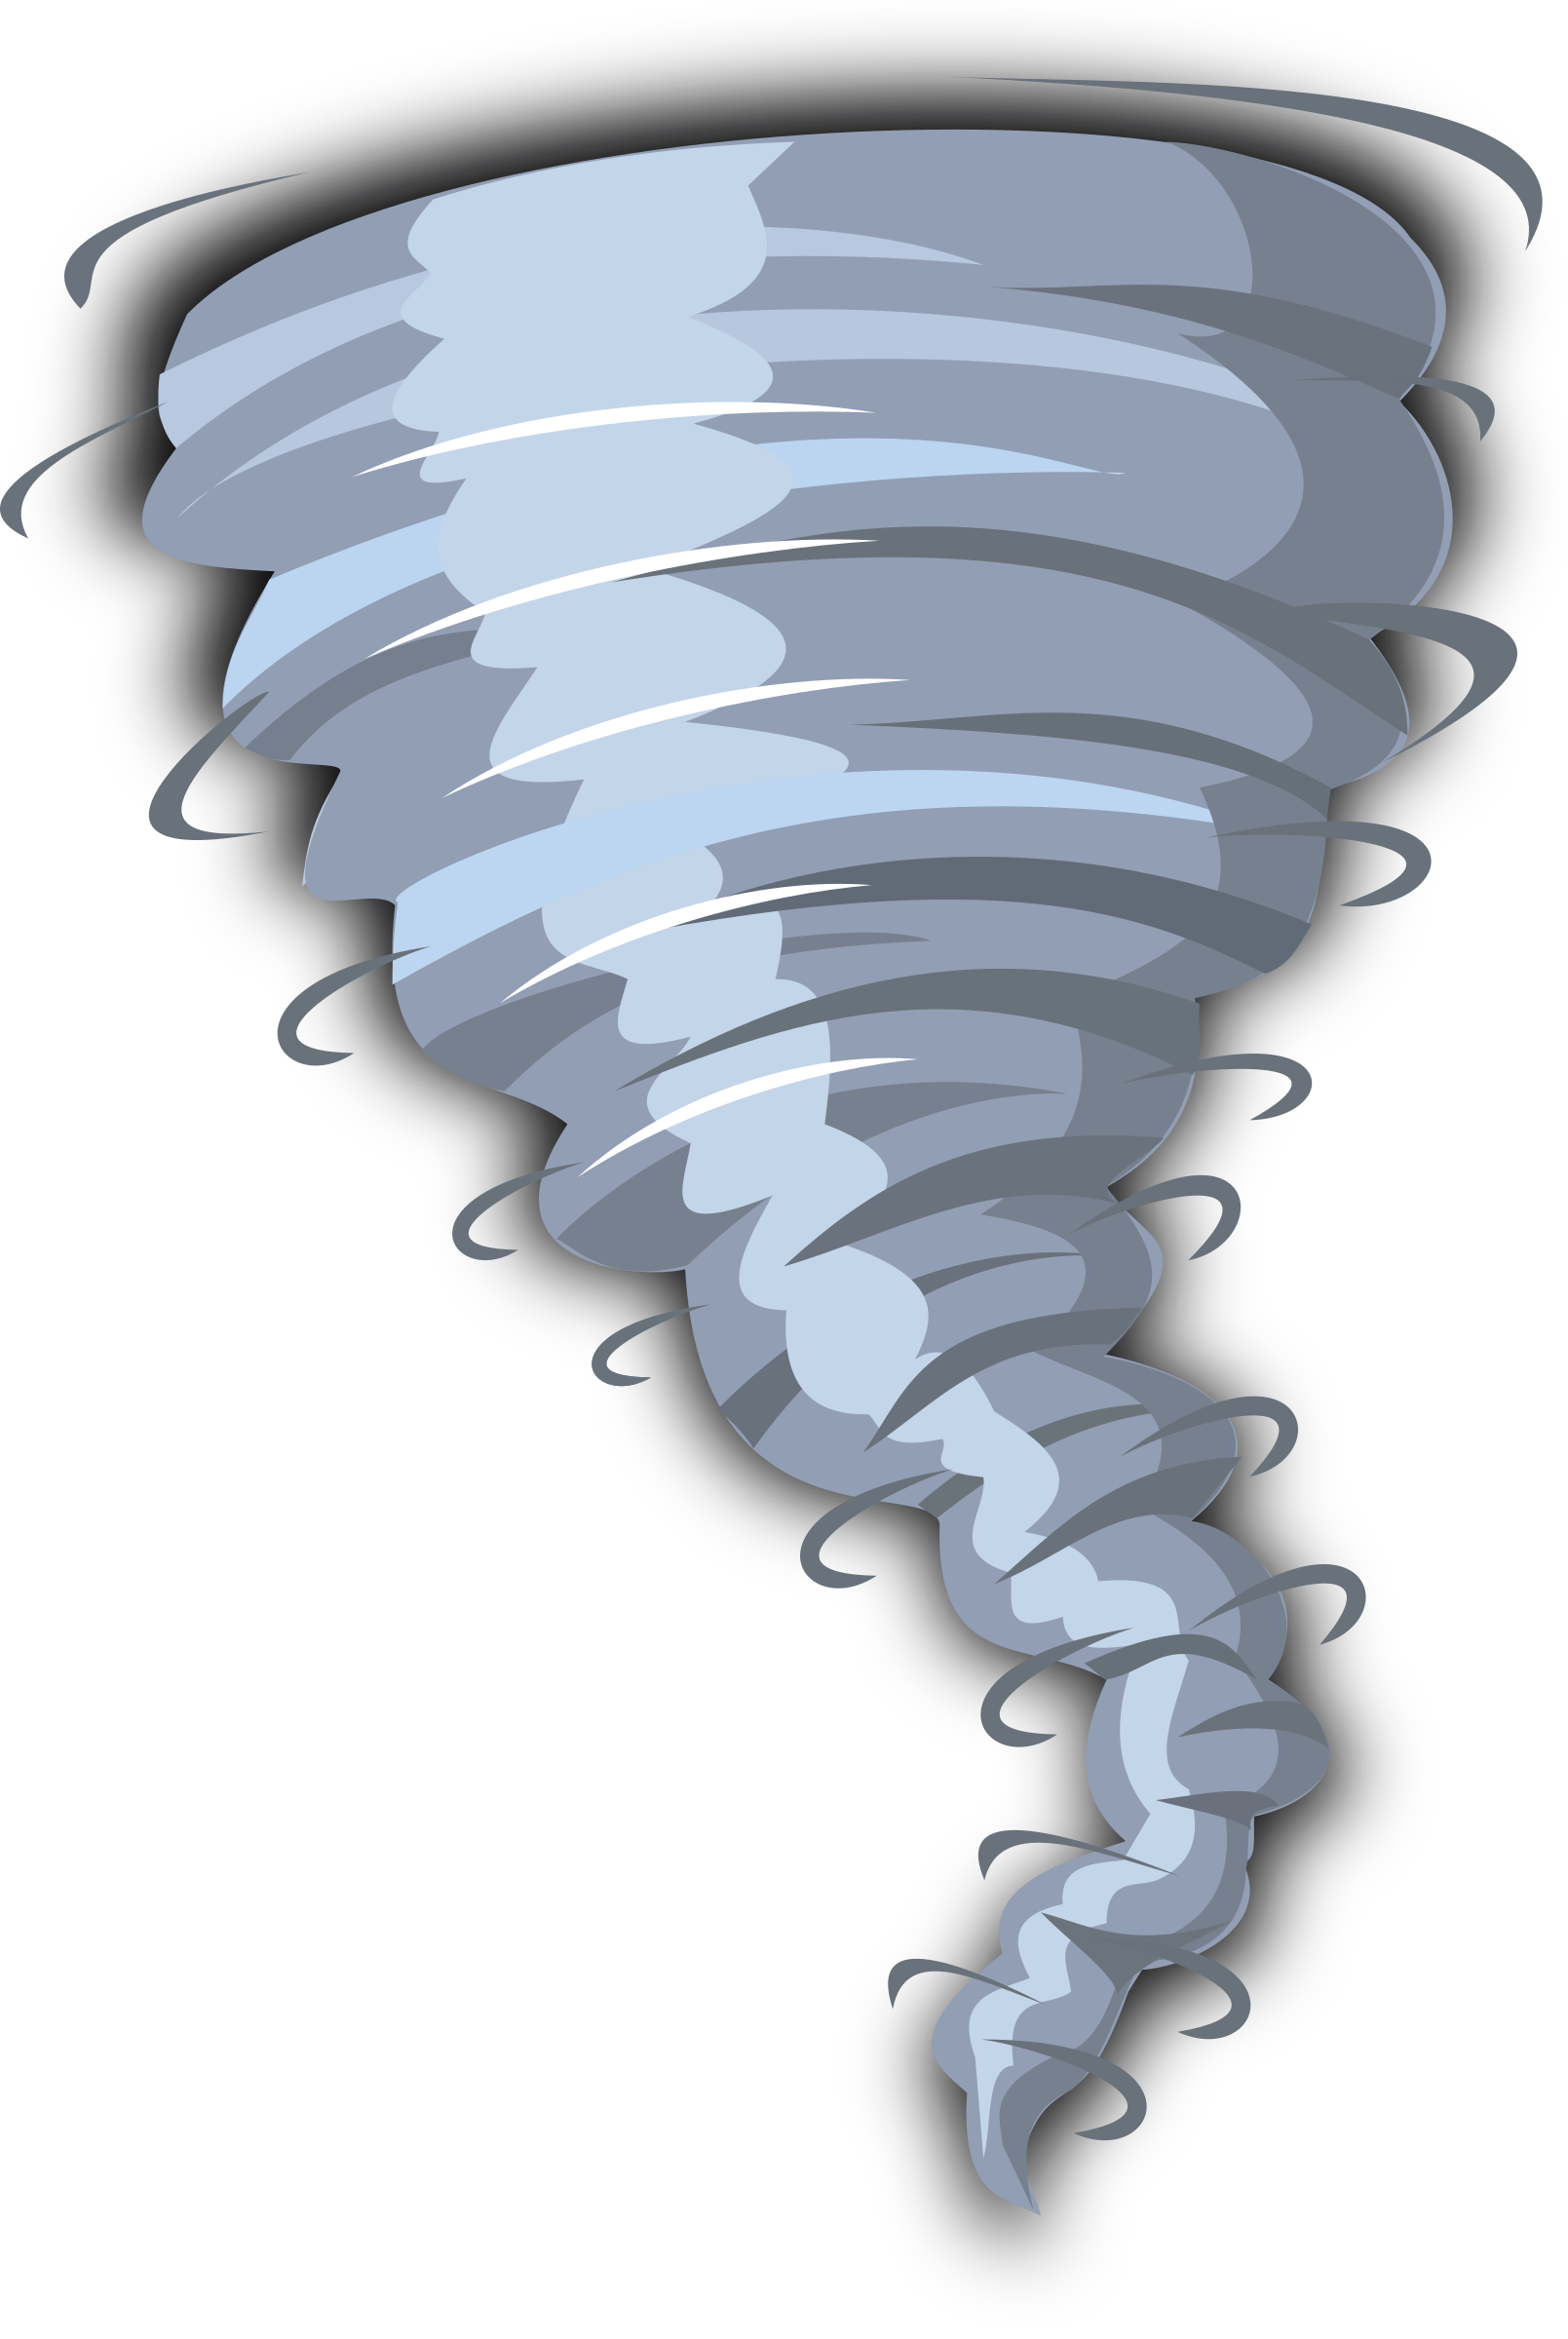 black and white download Tornado clipart. Clip art free download